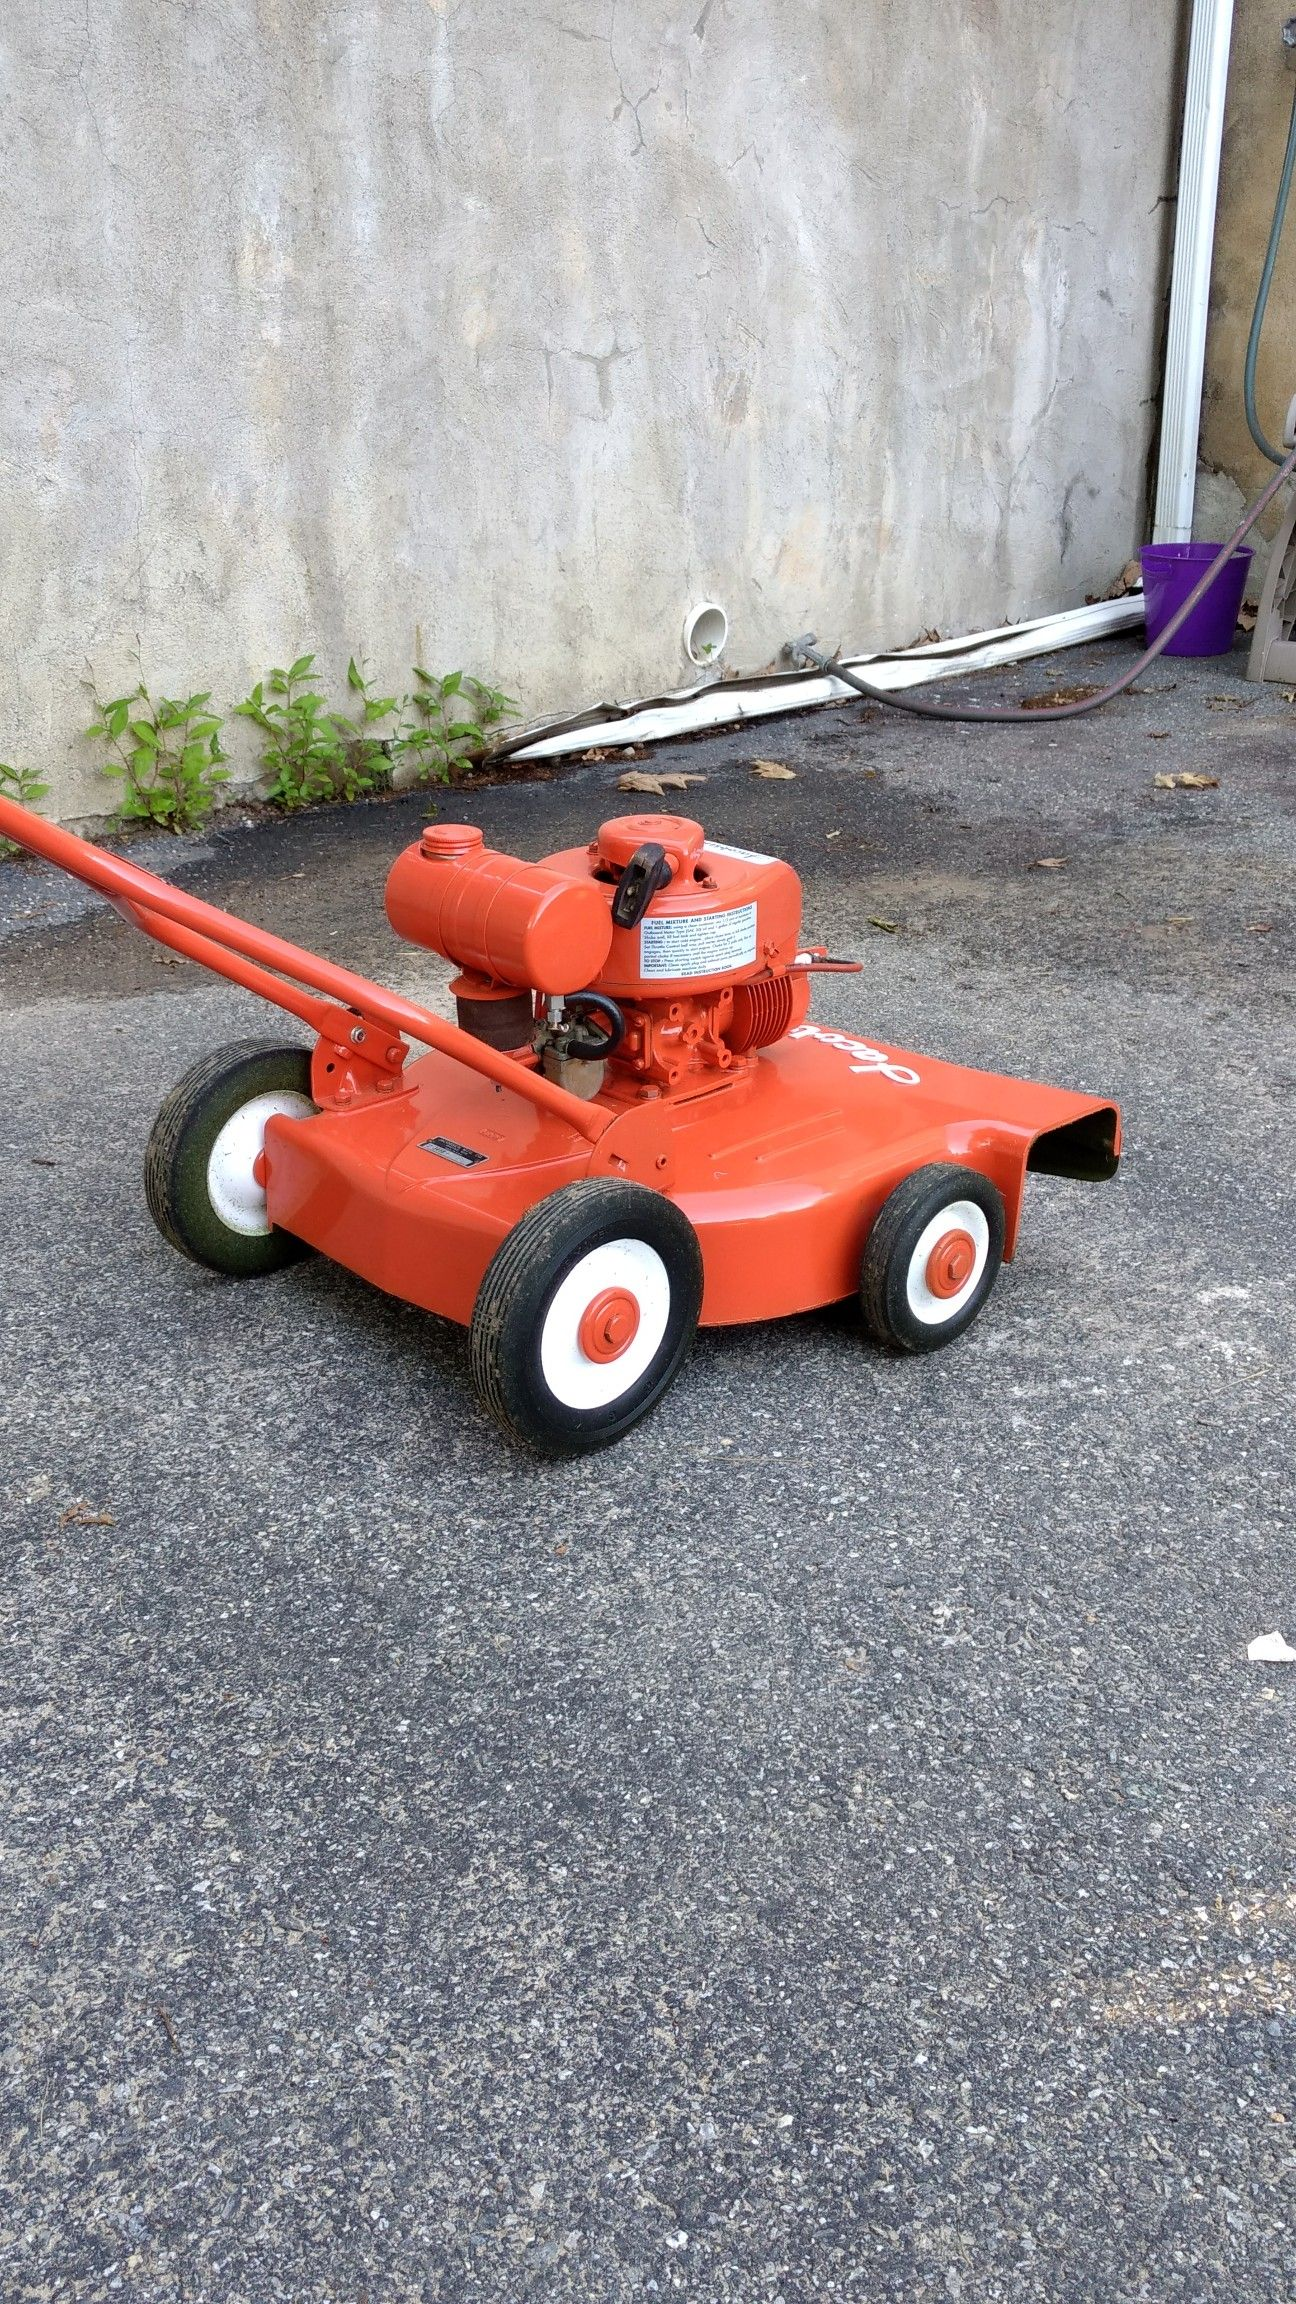 Rare 1st generation Jacobsen turbo cut | Old 2 cycle lawn mowers